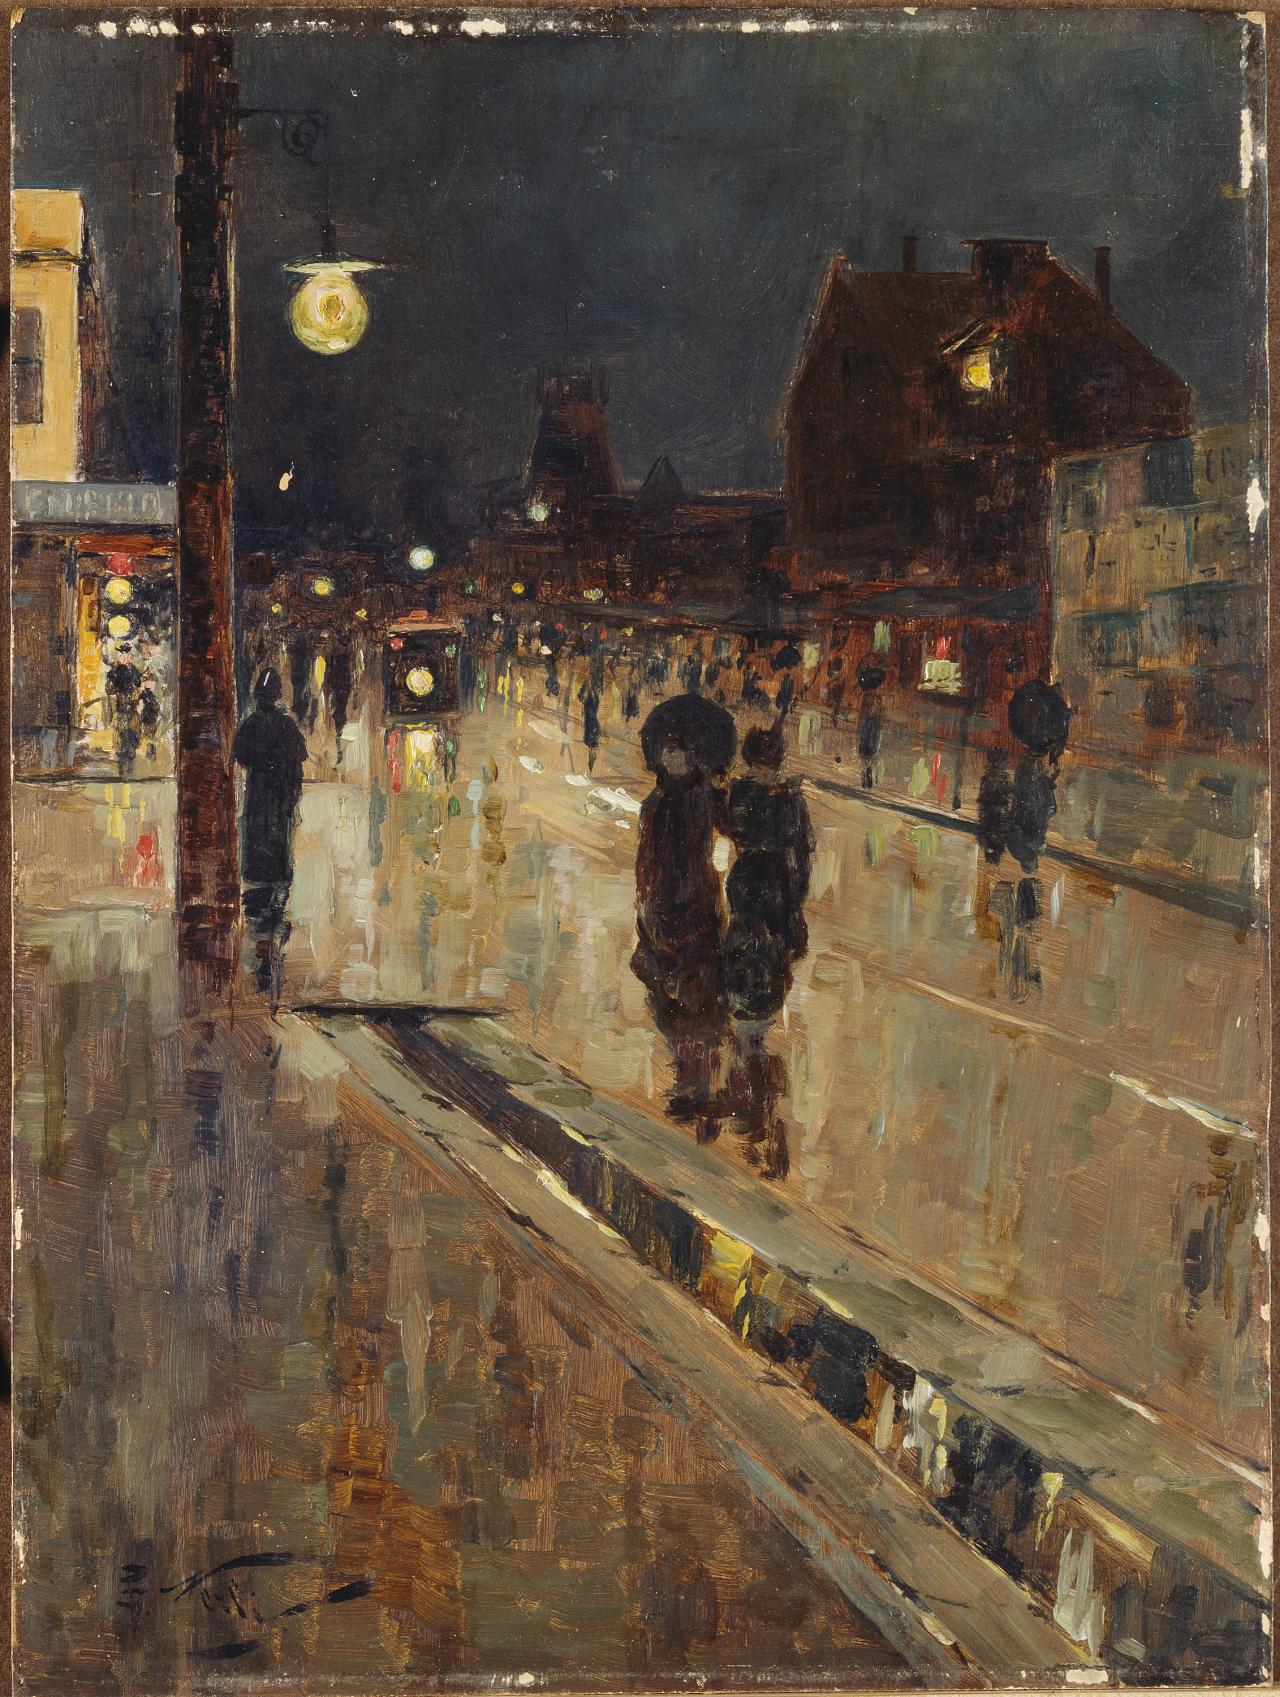 Street scene on a rainy night